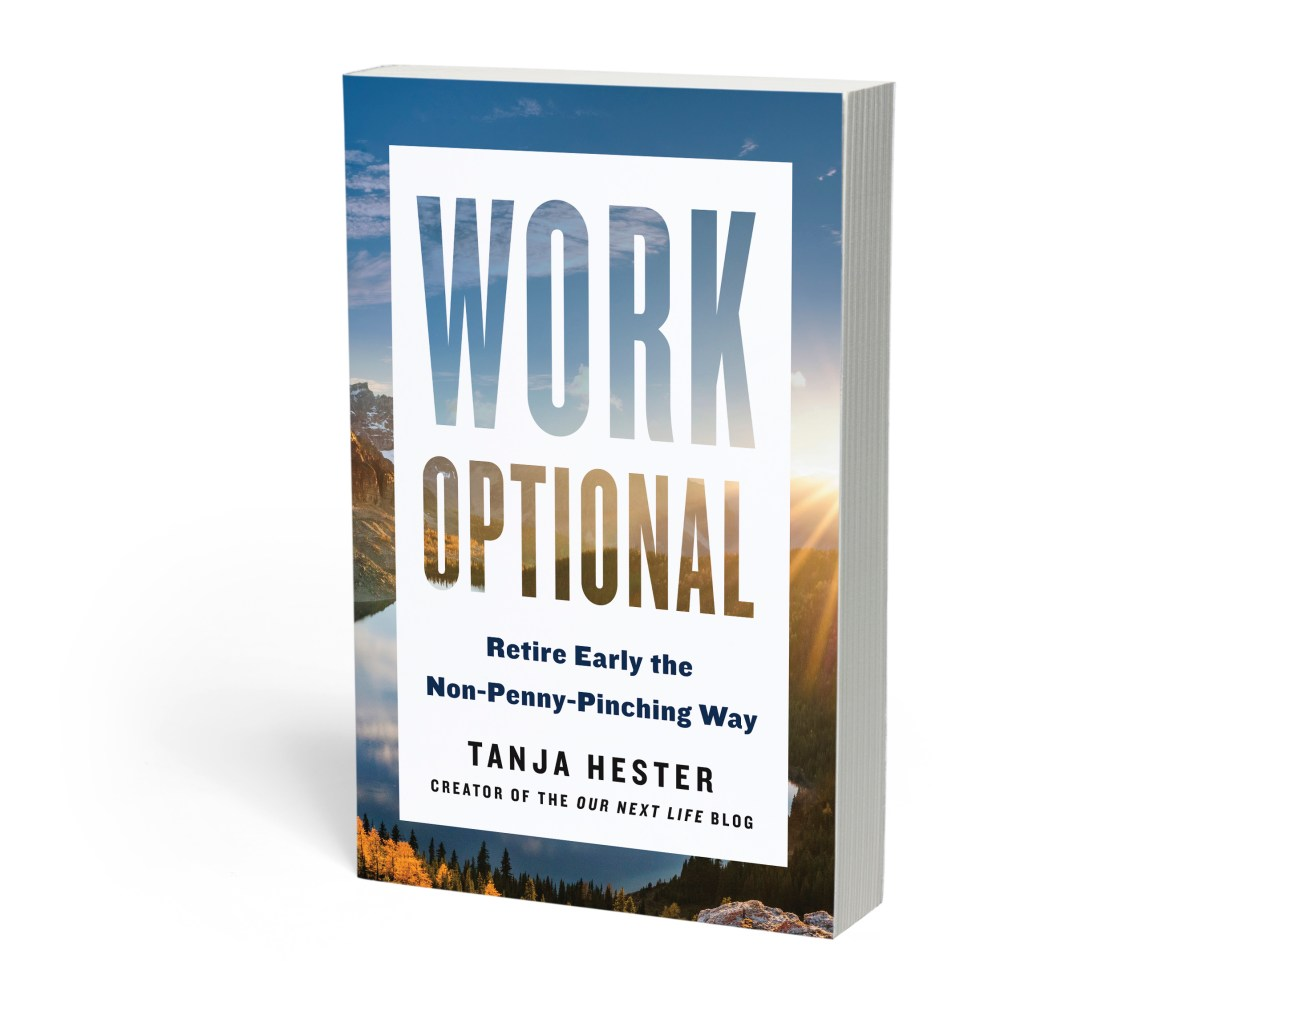 Work Optional: Retire Early the Non-Penny-Pinching Way, by Tanja Hester, Creator of the Our Next Life blog